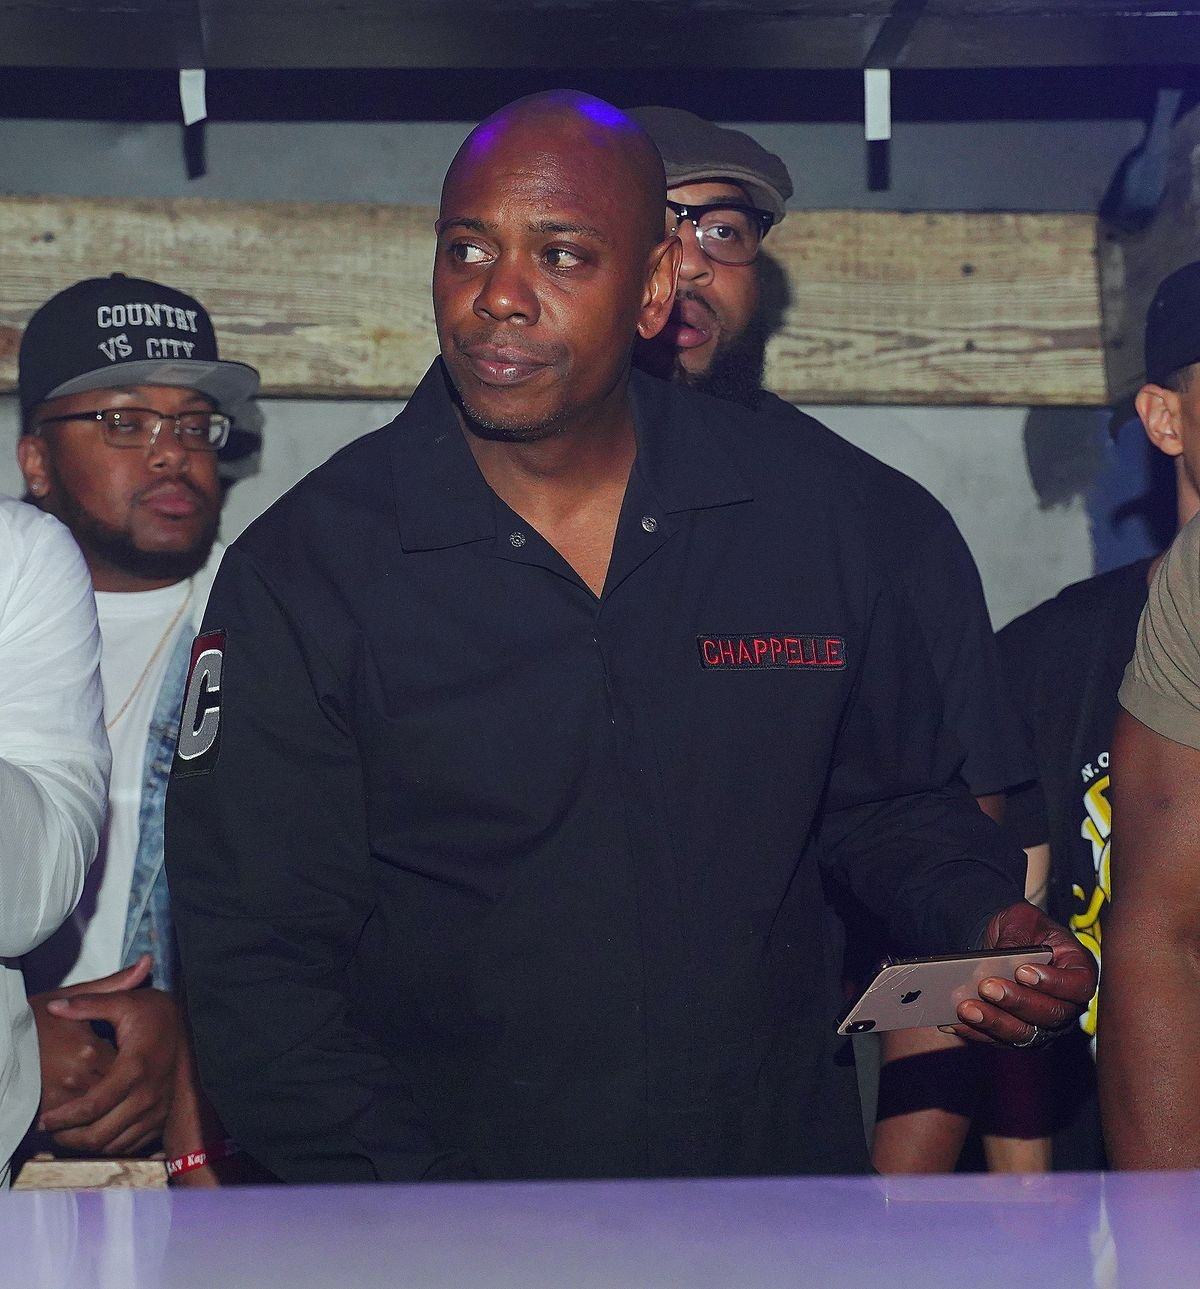 """Dave Chappelle at """"Cassette"""" hosted by Kenny Burns featuring Lil Mo and Noreaga at District Atlanta on June 14, 2019 